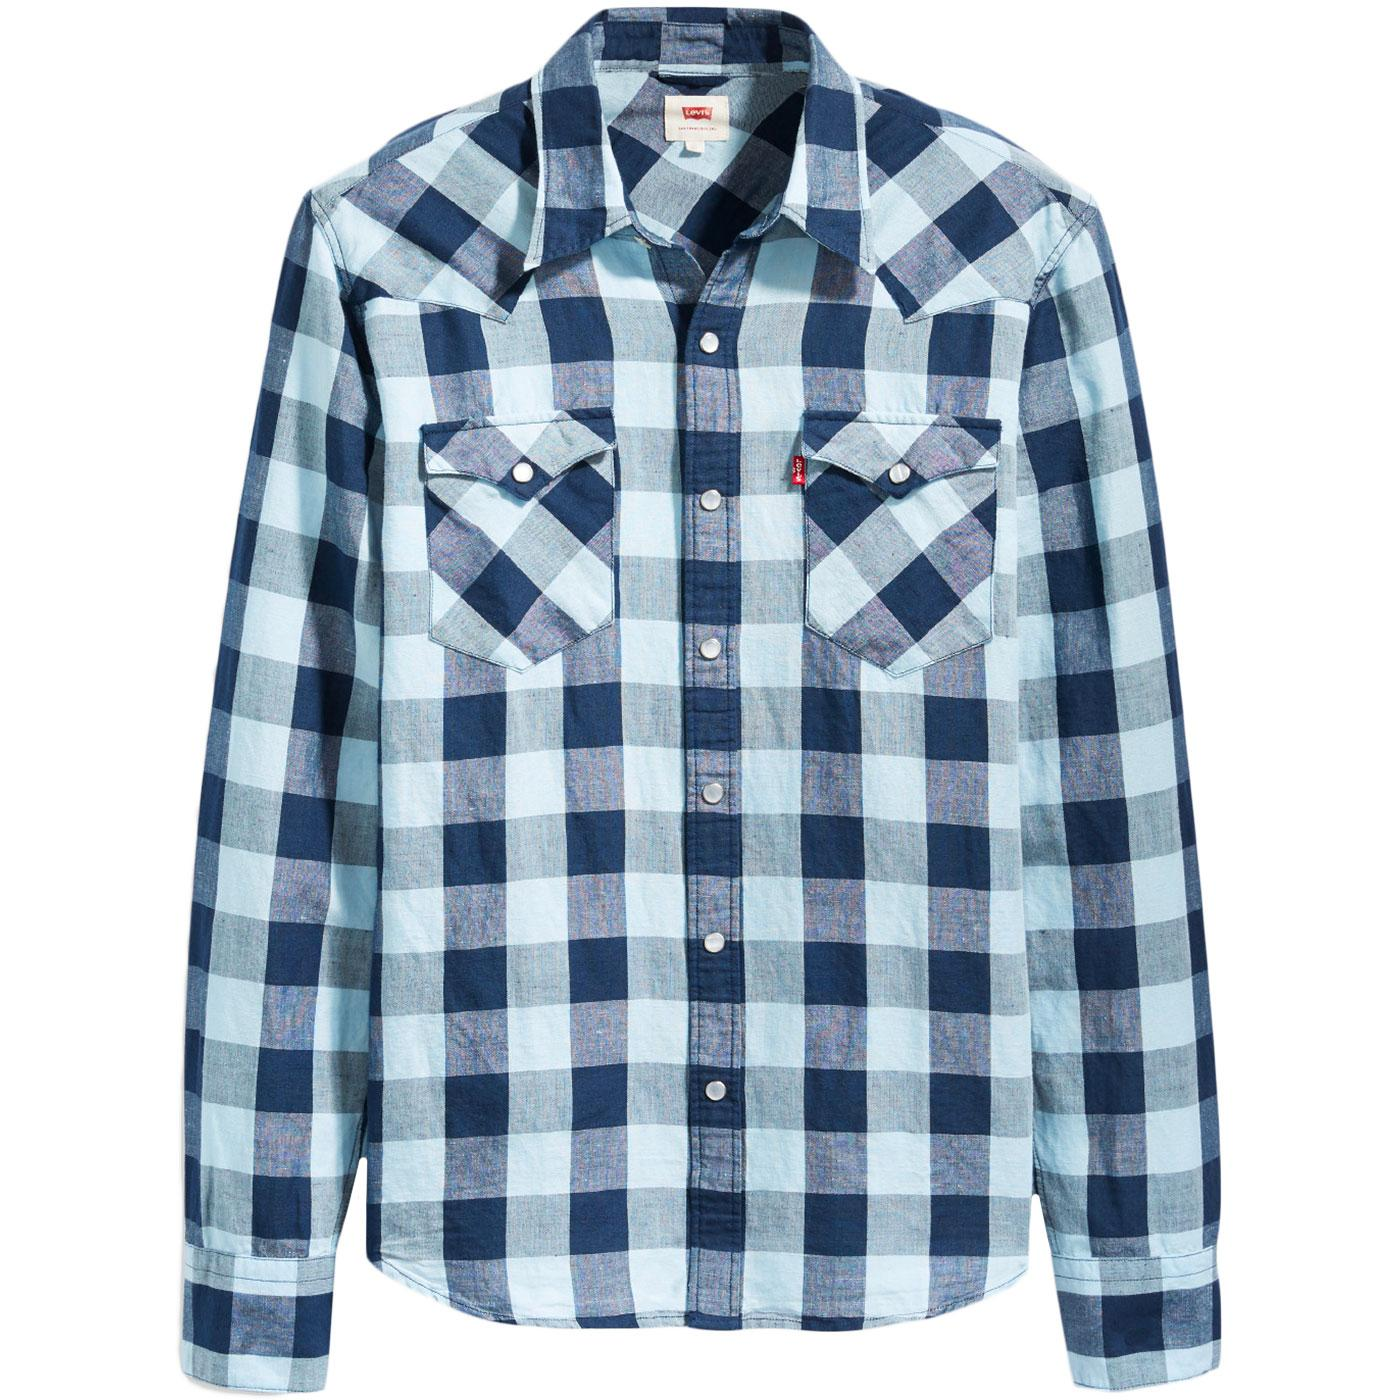 Barstow LEVI'S Retro Linen Check Western Shirt DB